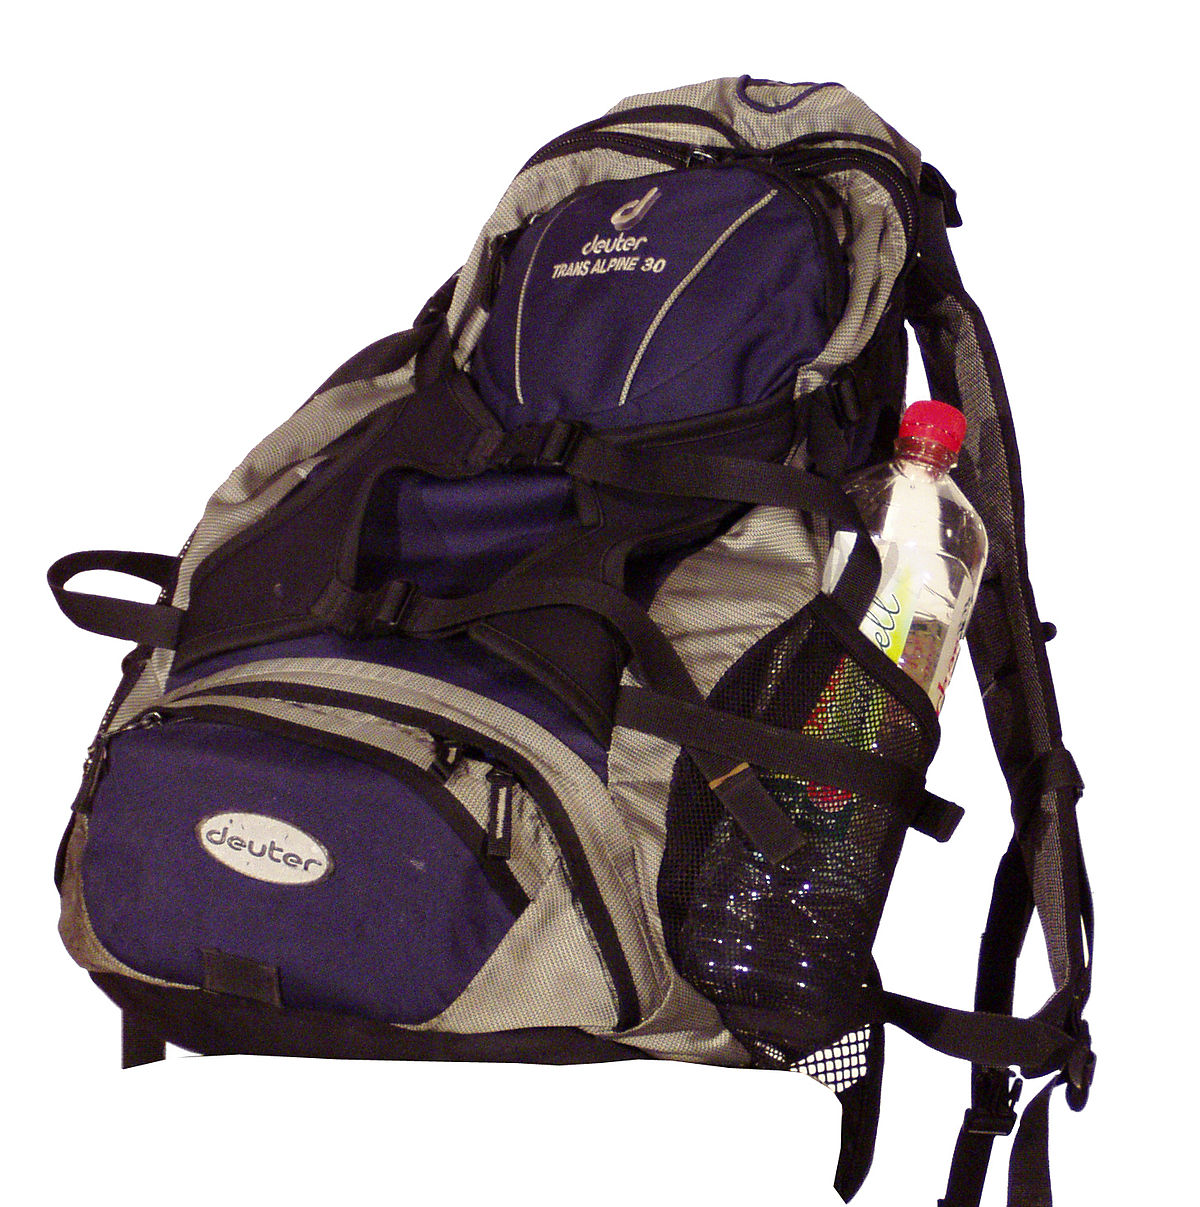 54852bf1d712 Backpack - Wikipedia